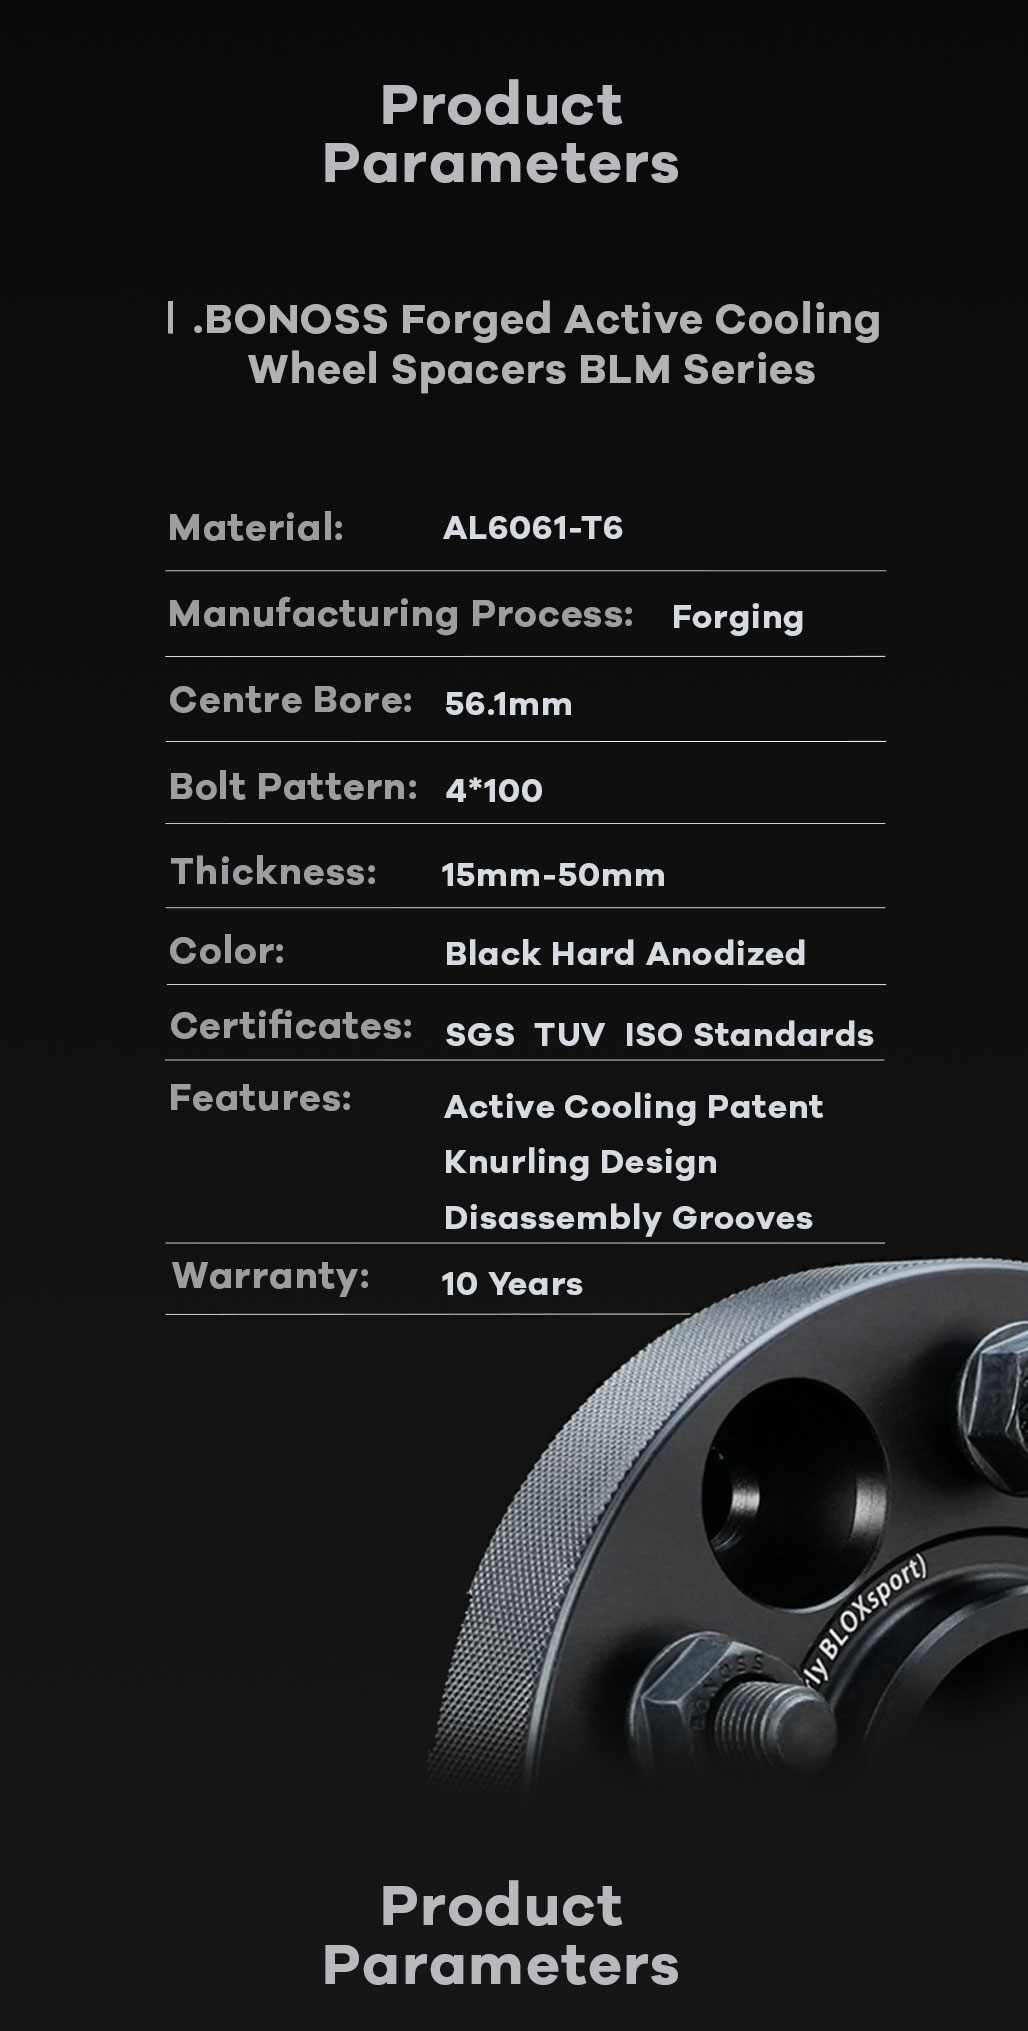 BONOSS Forged Active Cooling Hubcentric Wheel Spacers 4 Lugs Wheel Adapters AL6061-T6 Material CB56.1